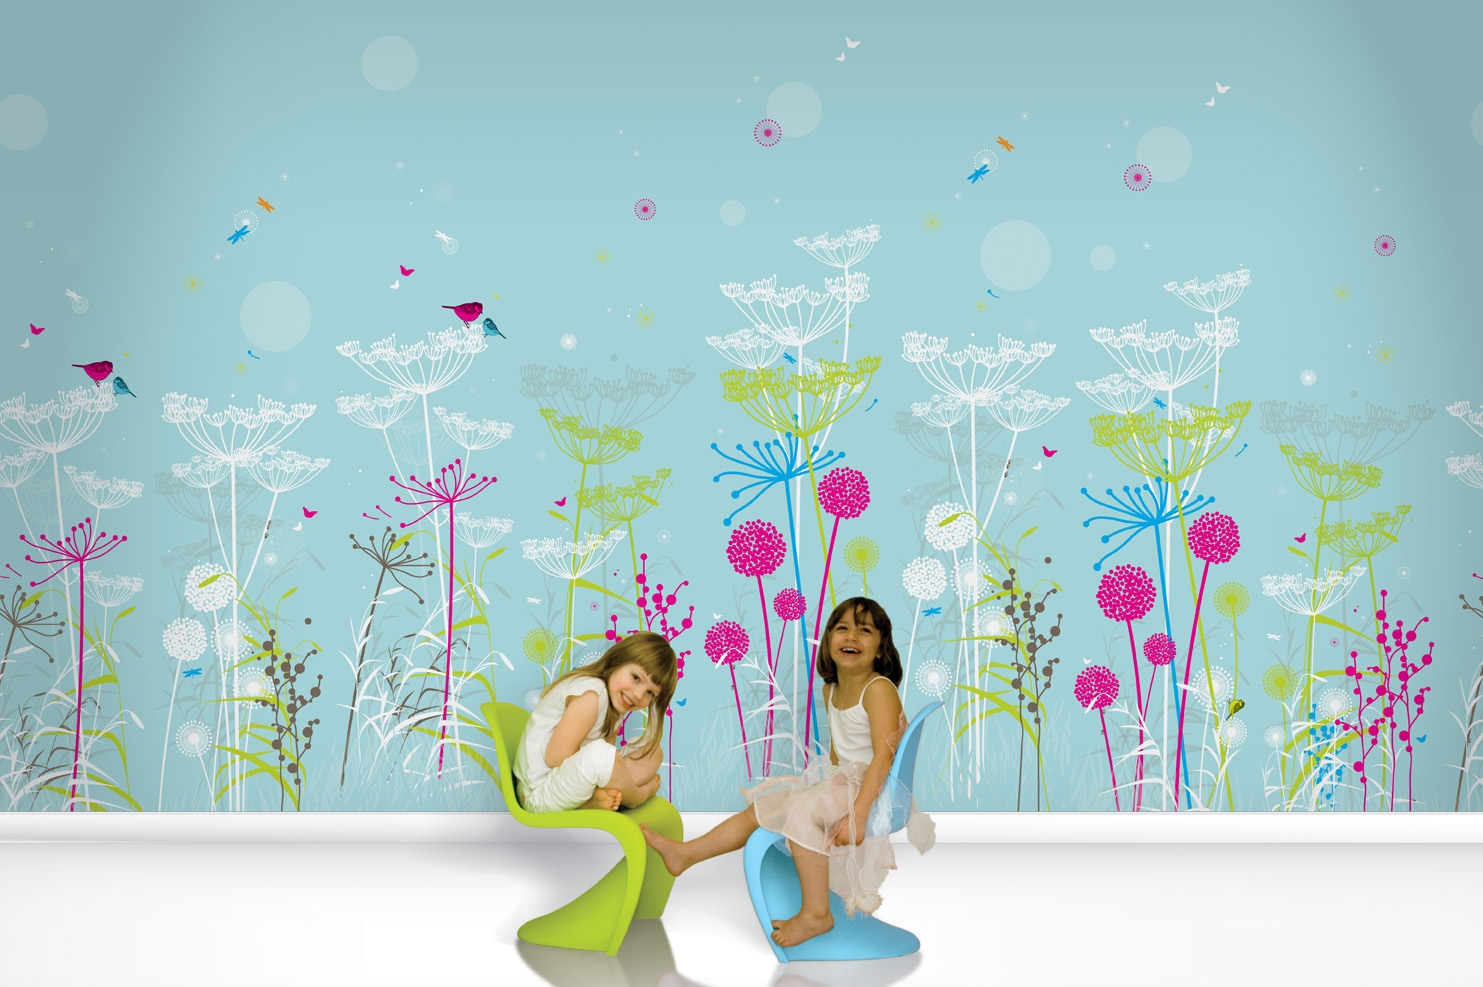 24 kids wallpapers images pictures design trends for Child mural wallpaper